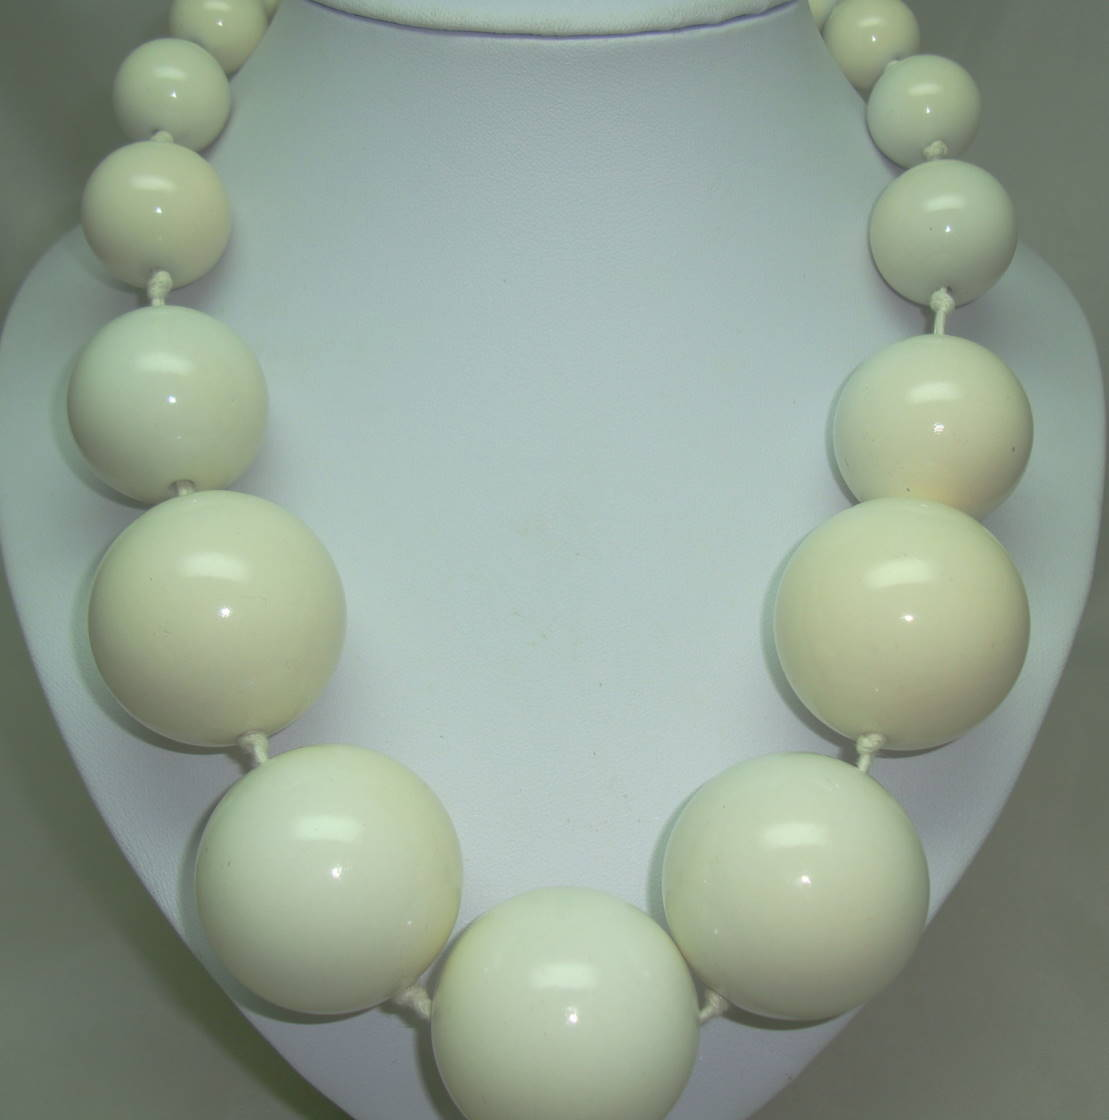 £25.00 - Stunning Chunky Cream Acrylic Oversized Bead Necklace Statement Piece!